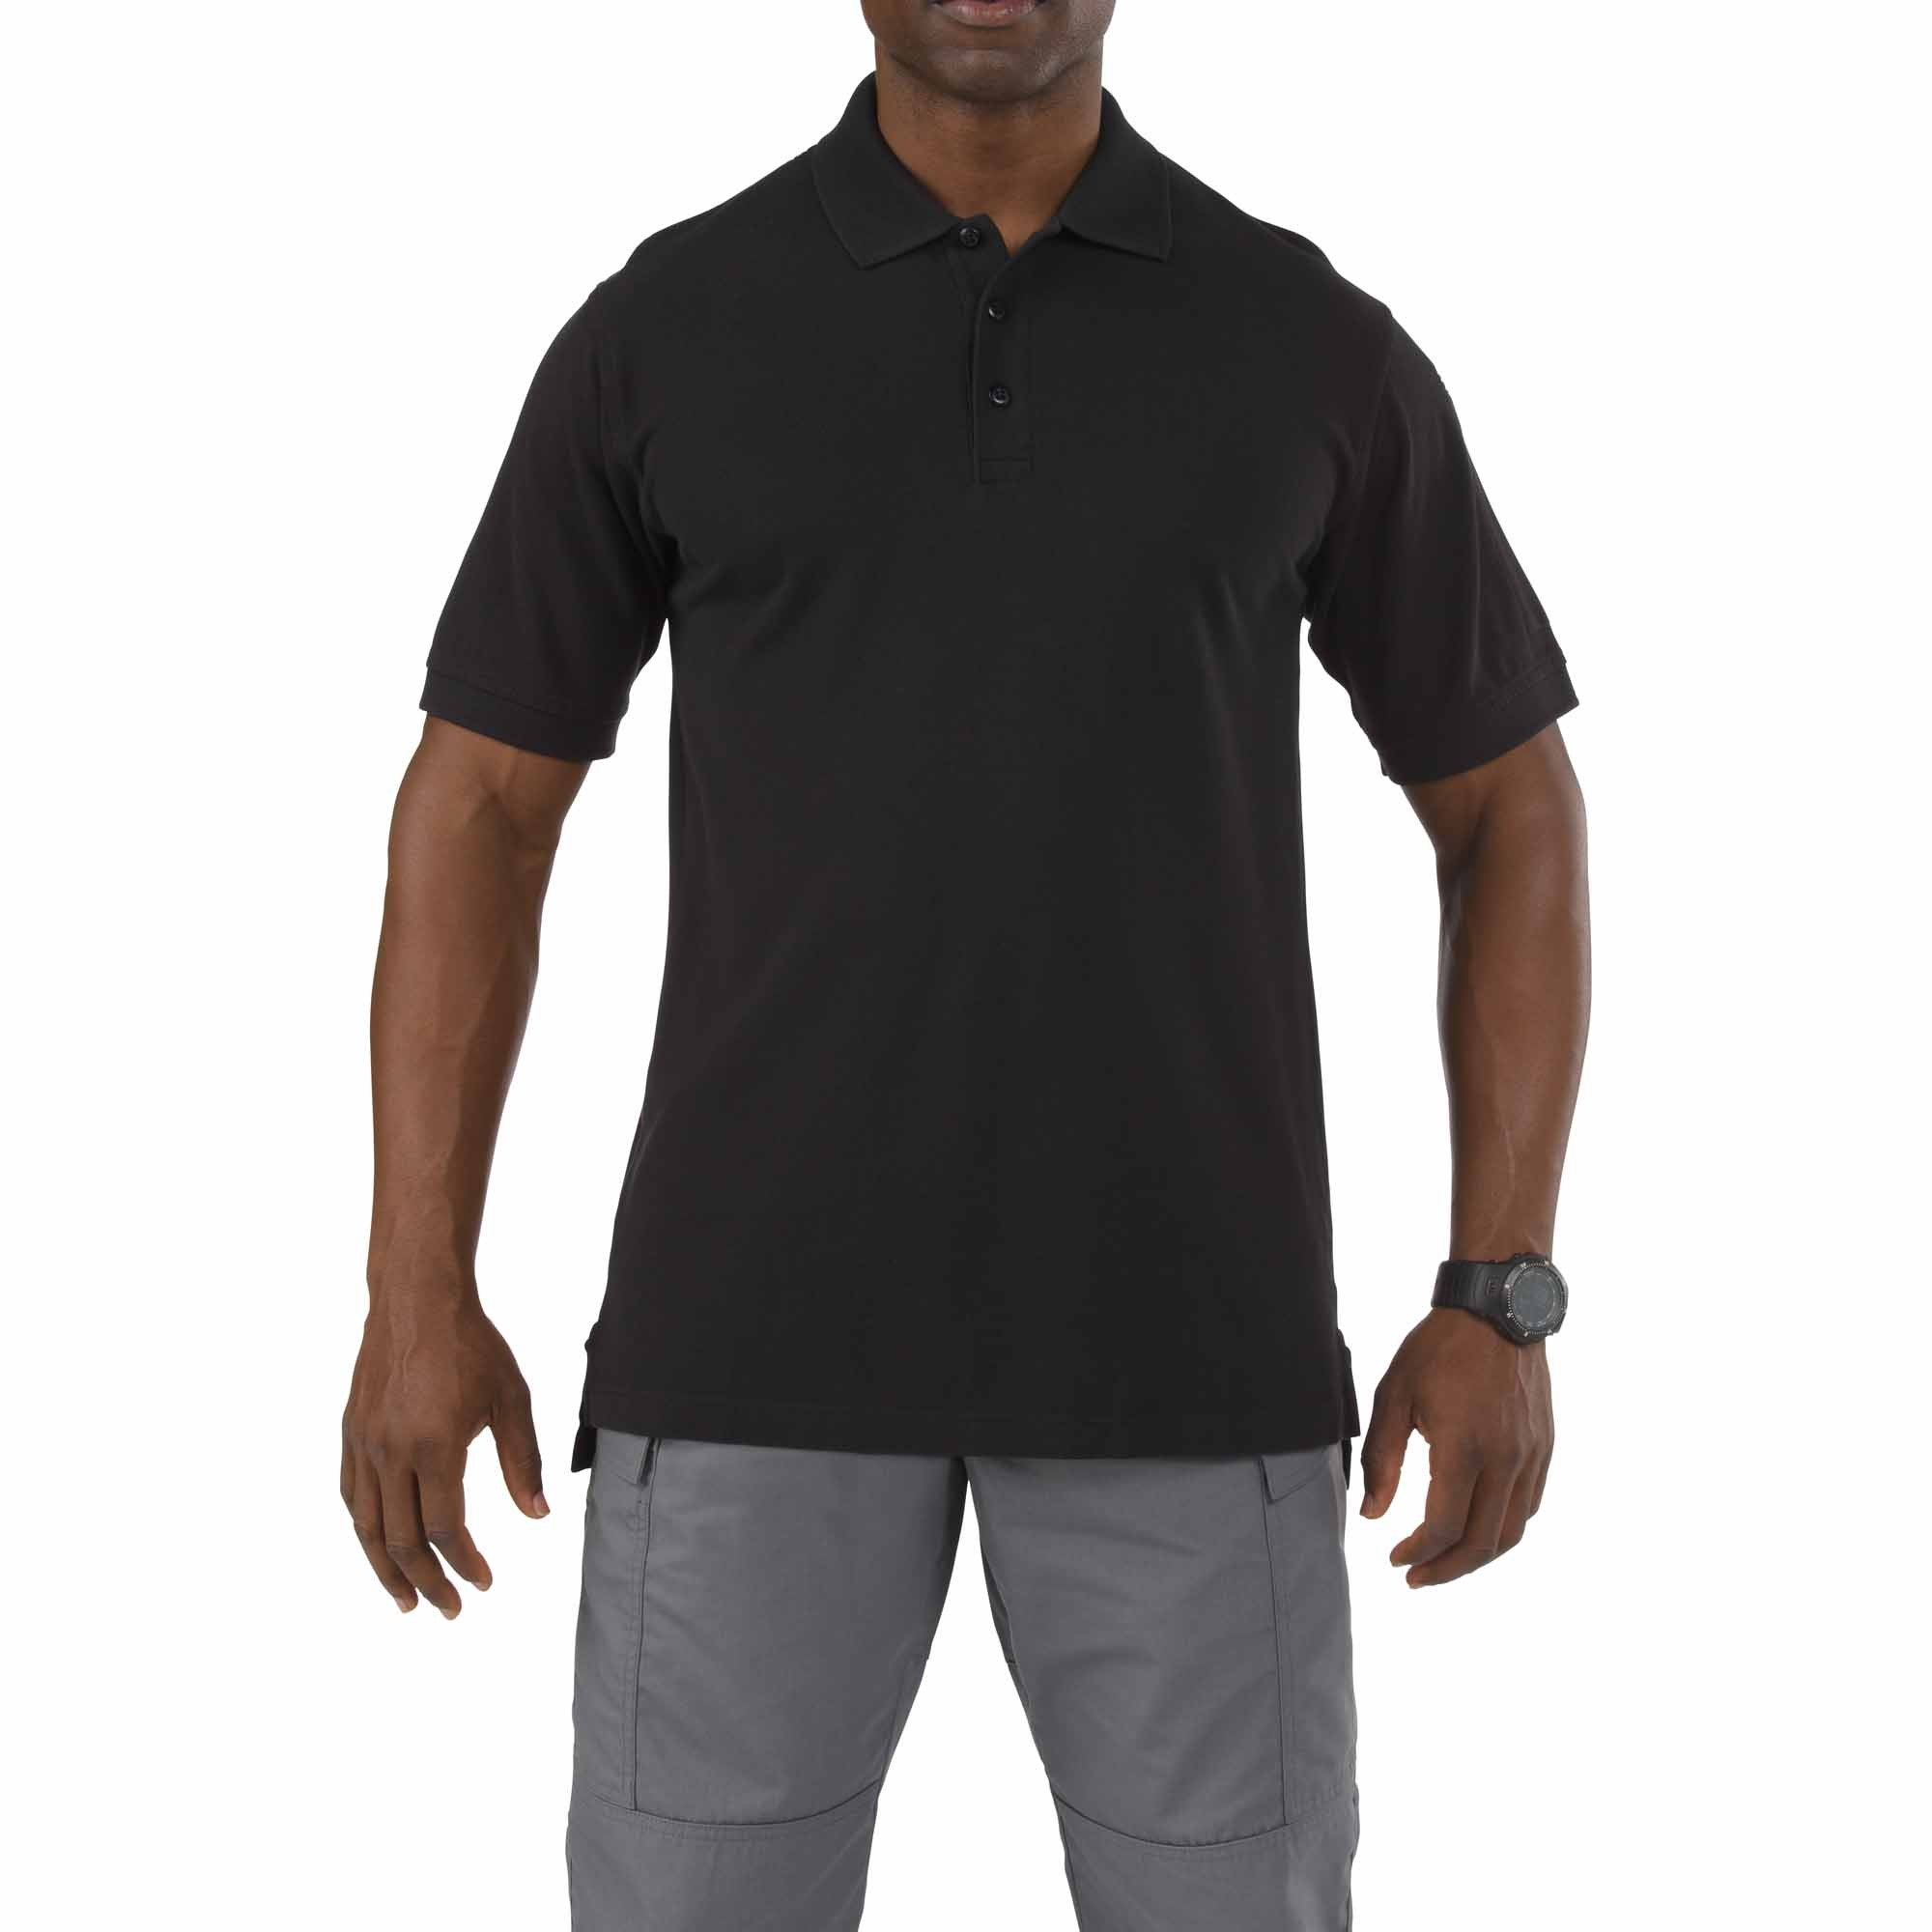 5.11 Professional Polo – Short Sleeve